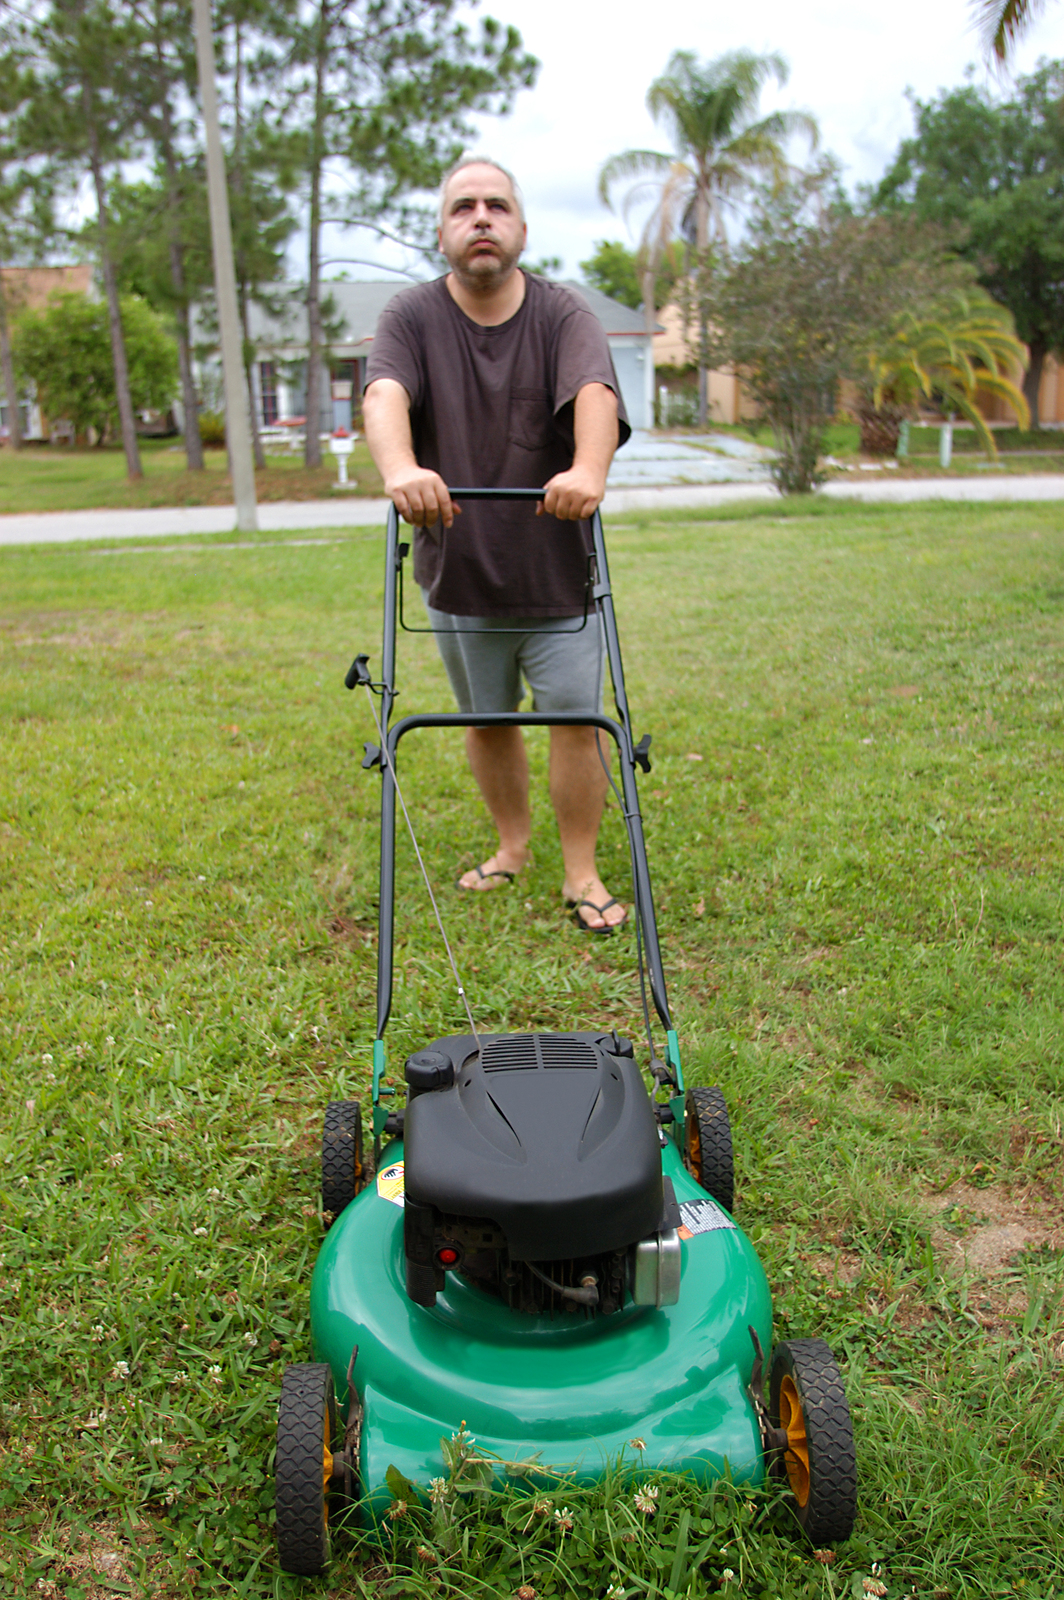 elderly man unhappy about mowing the lawn